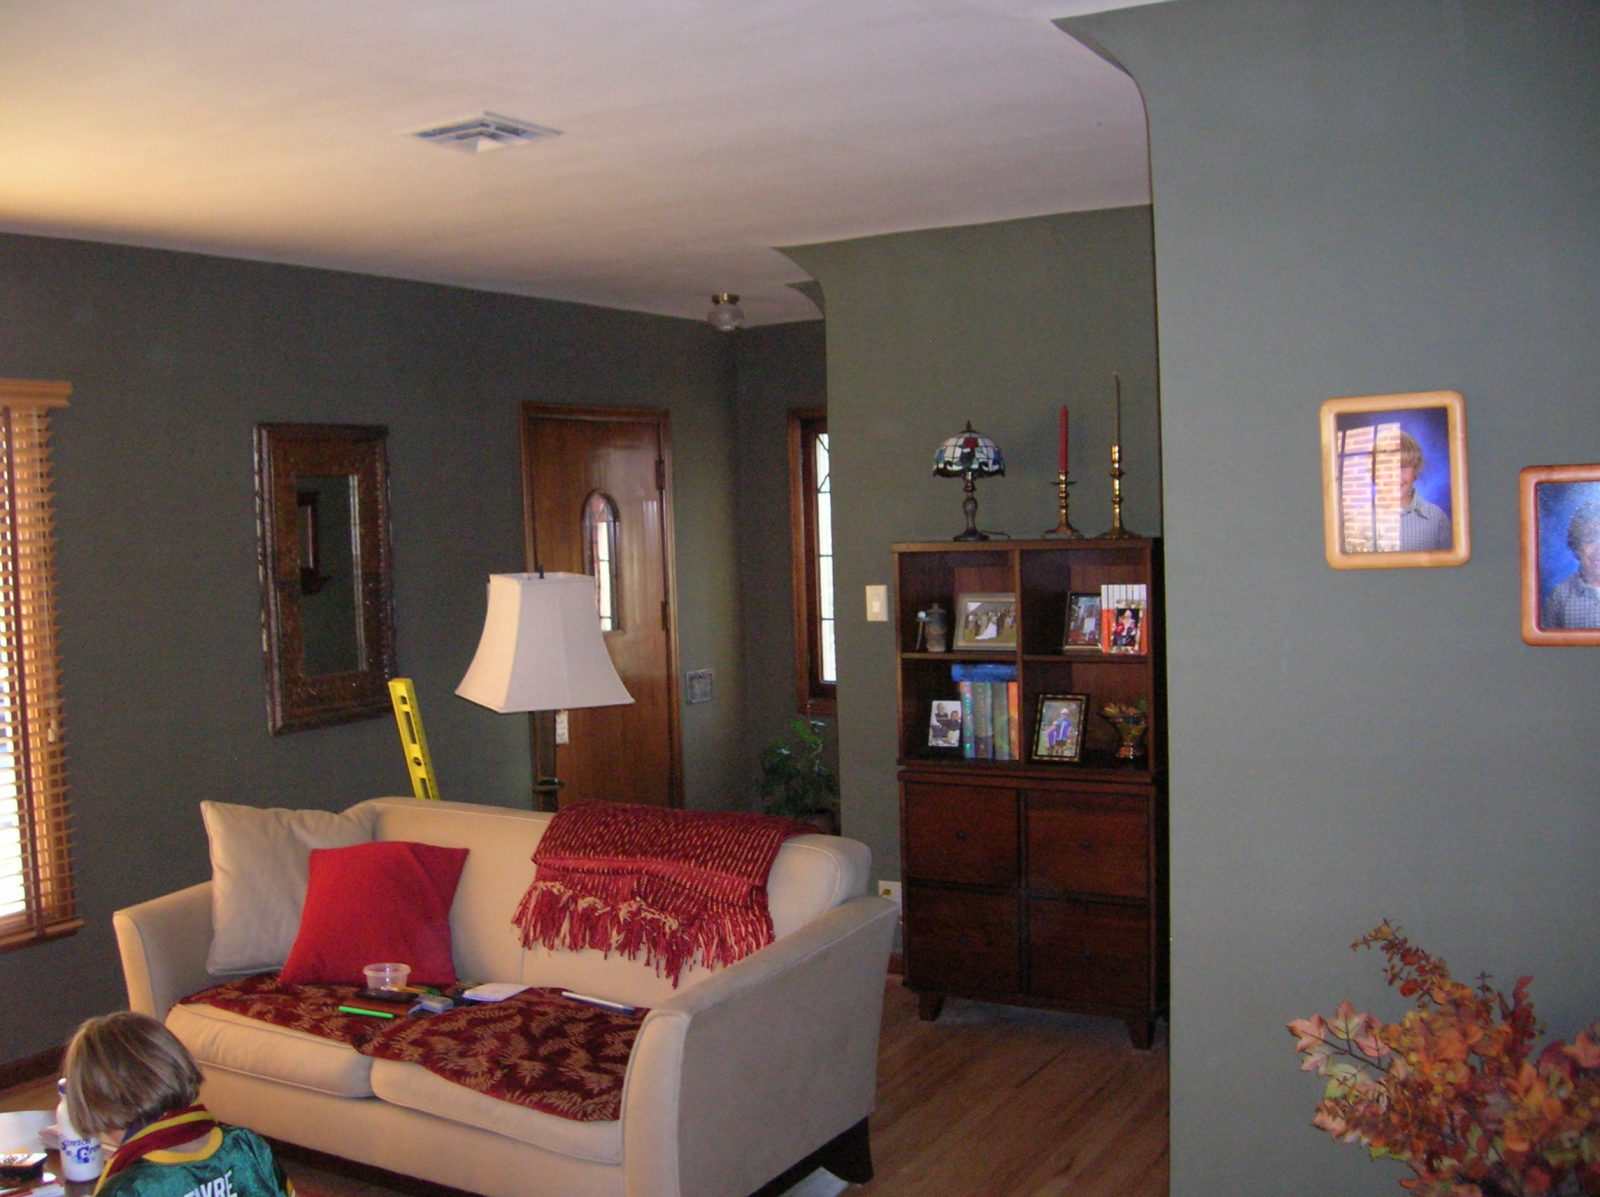 Before, Tudor, Living Room, Remodel, Additions, Second Story | Renovation Design Group